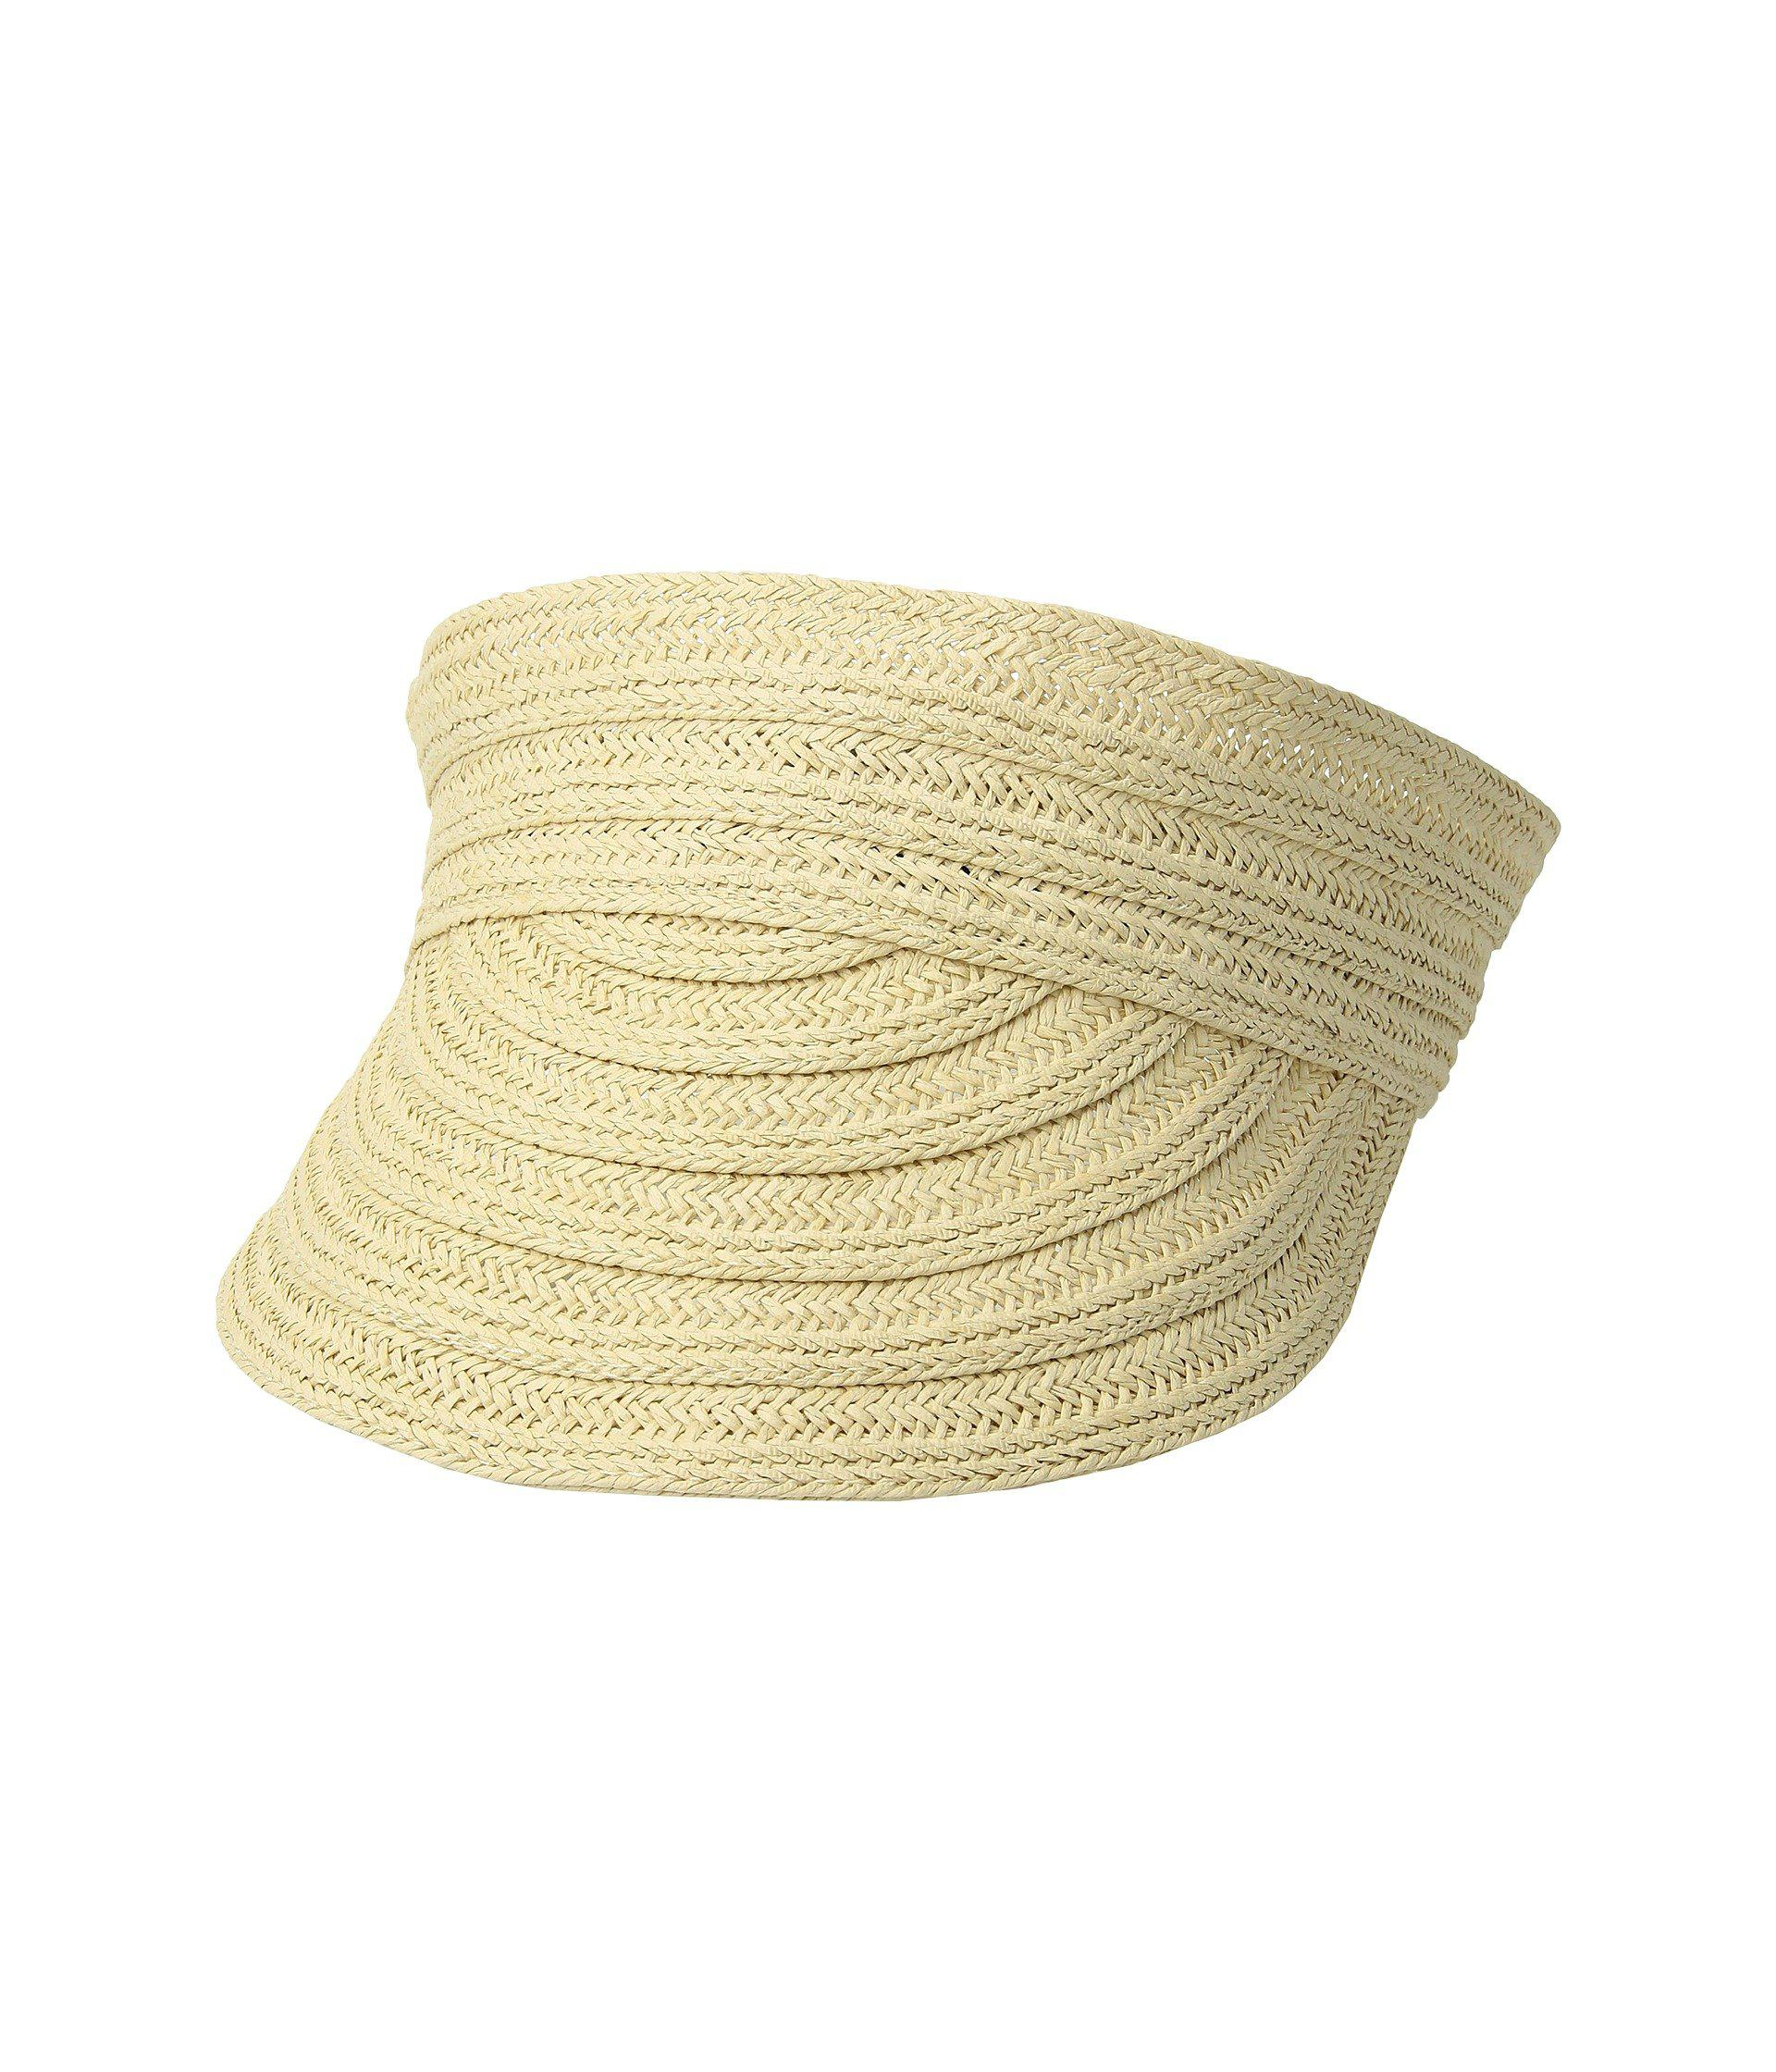 Lyst - Lauren by Ralph Lauren Packable Straw Visor Hat (natural ... 7471b558772